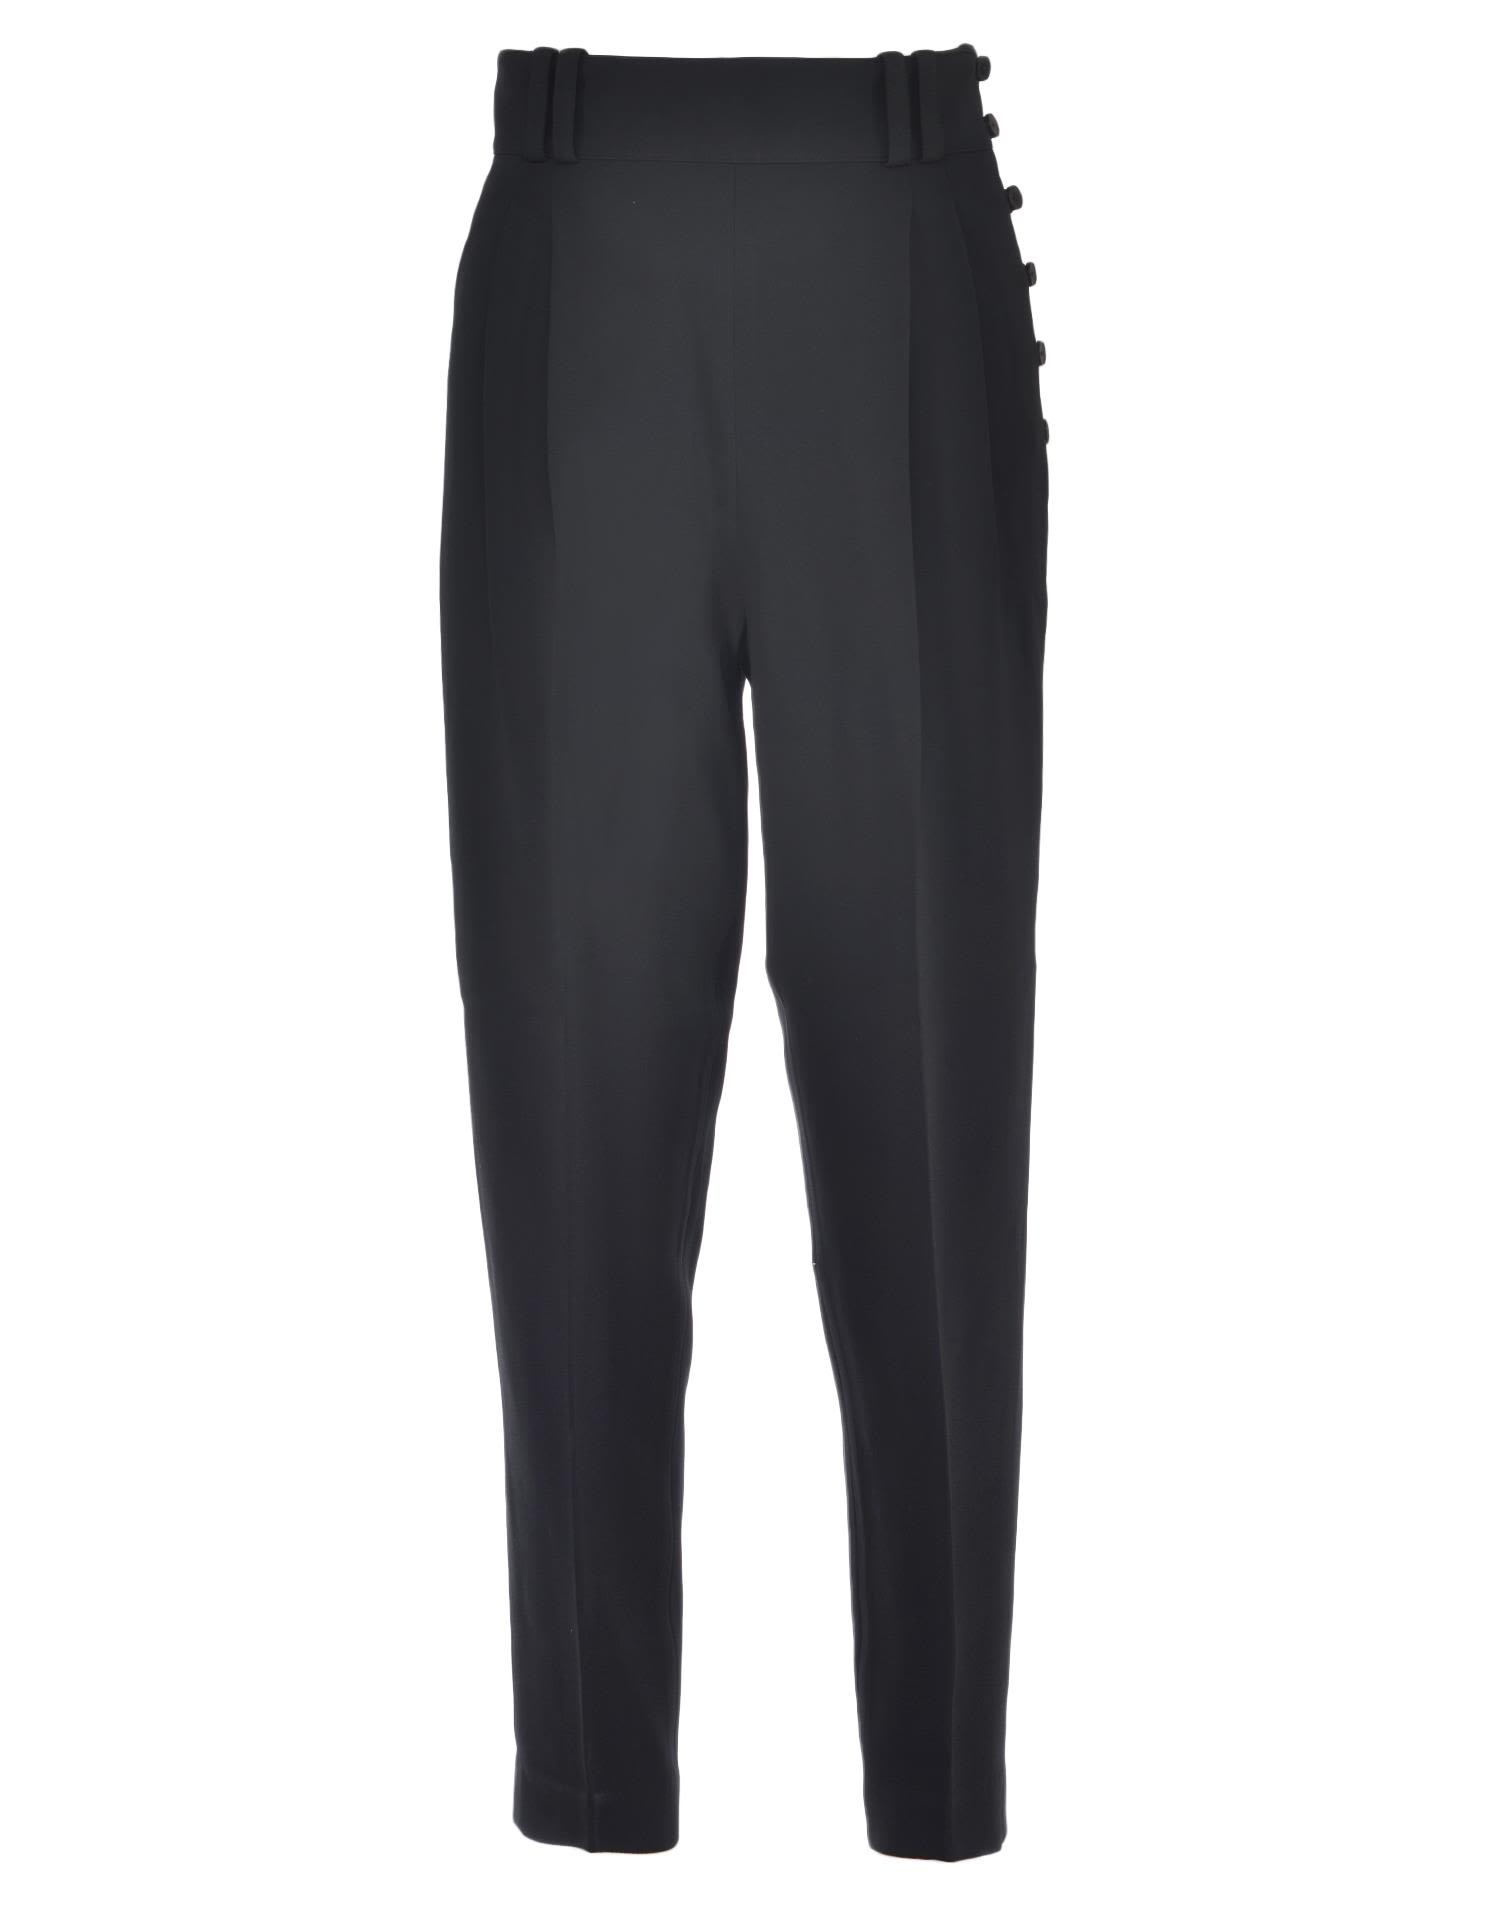 3.1 Phillip Lim Viscose Trousers